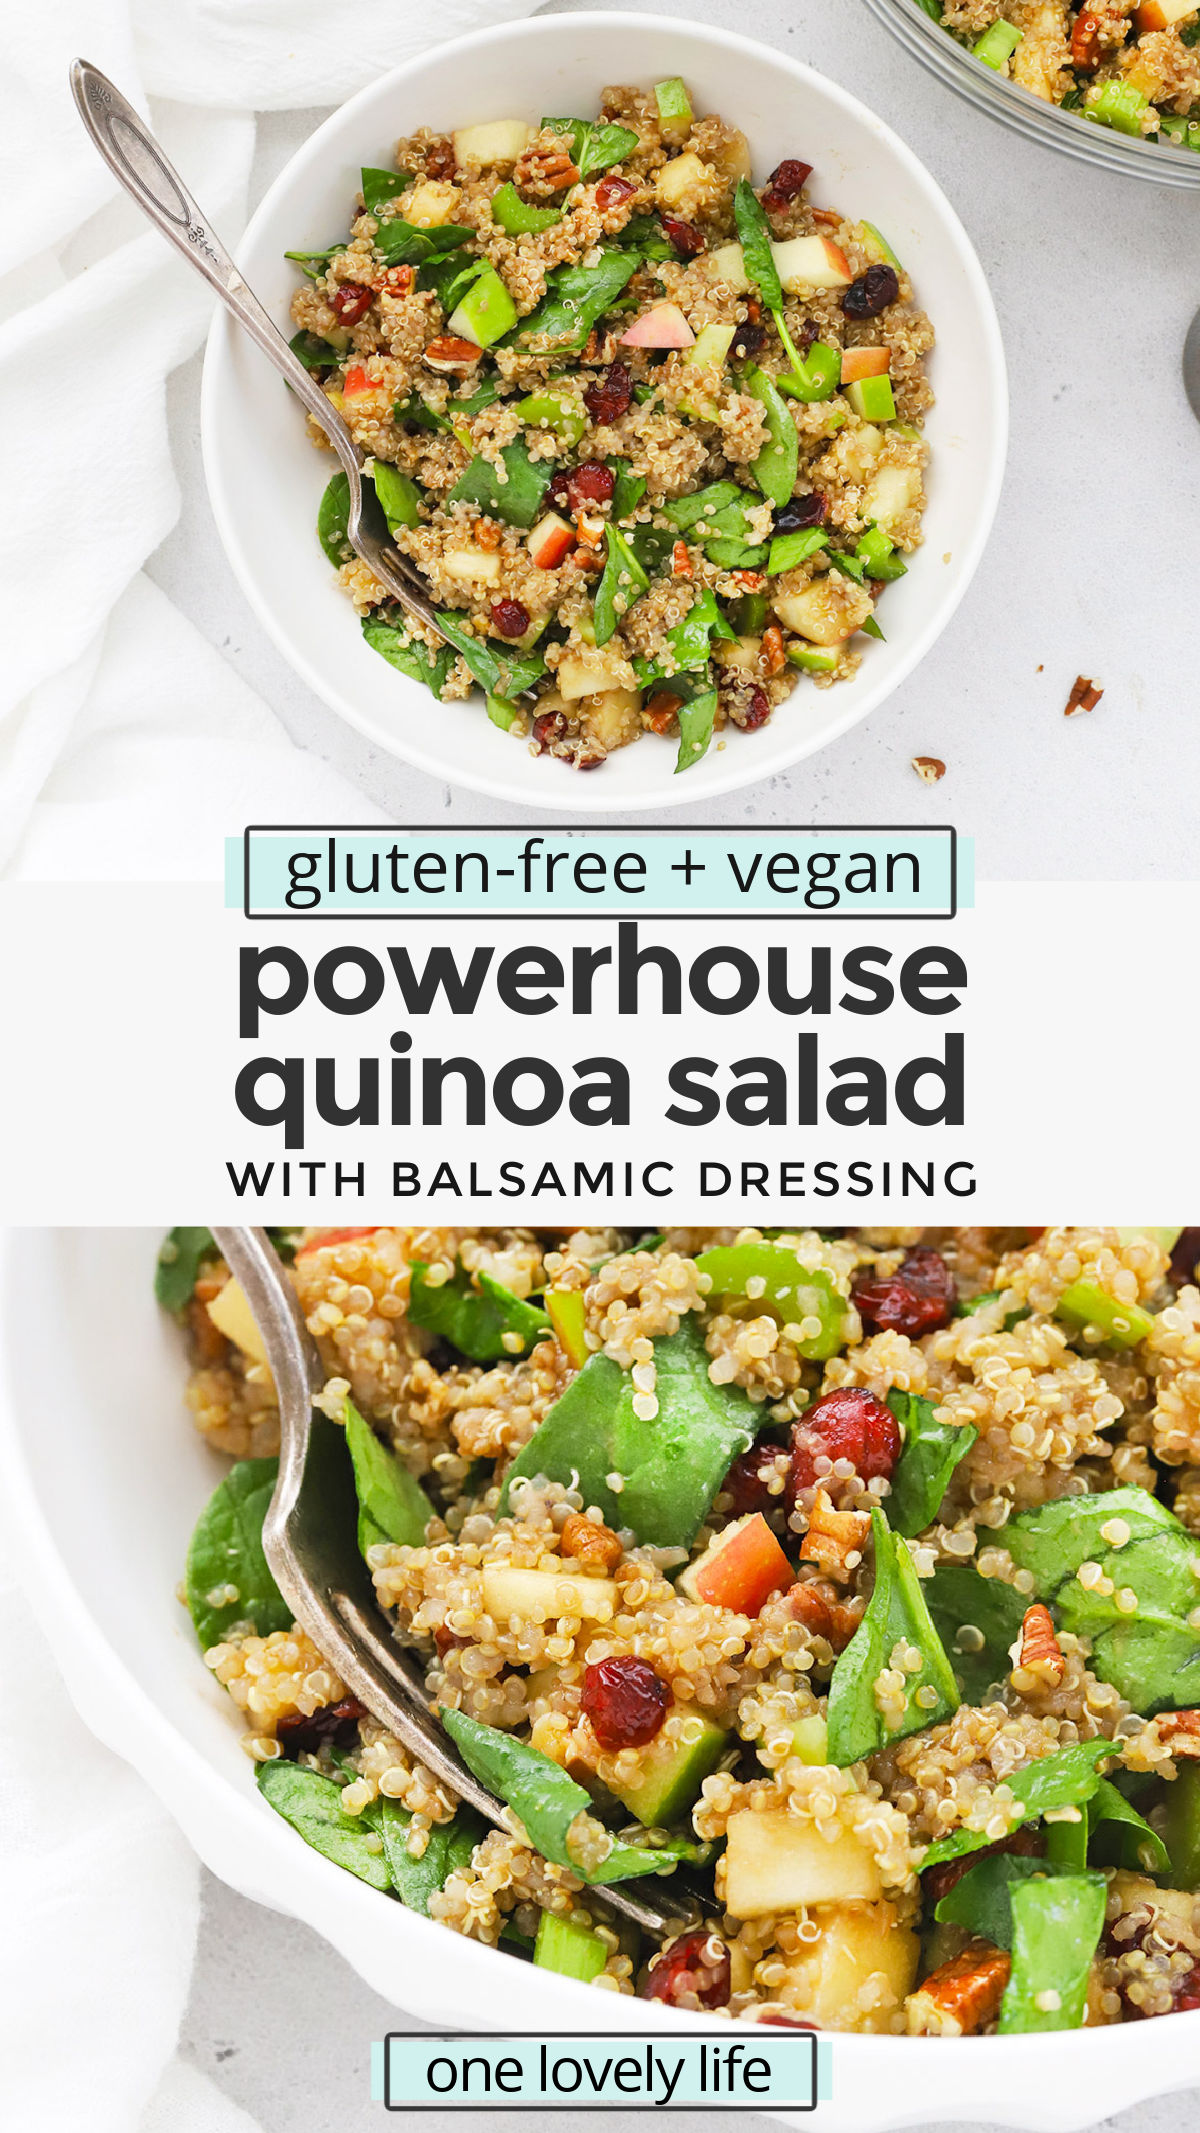 Powerhouse Quinoa Salad - This healthy quinoa salad is PACKED with superfood nutrients and flavor. It's the perfect healthy meal prep lunch! (Gluten-free + vegan) // Vegan Lunch // Healthy Lunch Ideas // Quinoa Salad Recipe // Fall Quinoa Salad #vegan #mealprep #healthylunch #glutenfree #quinoasalad